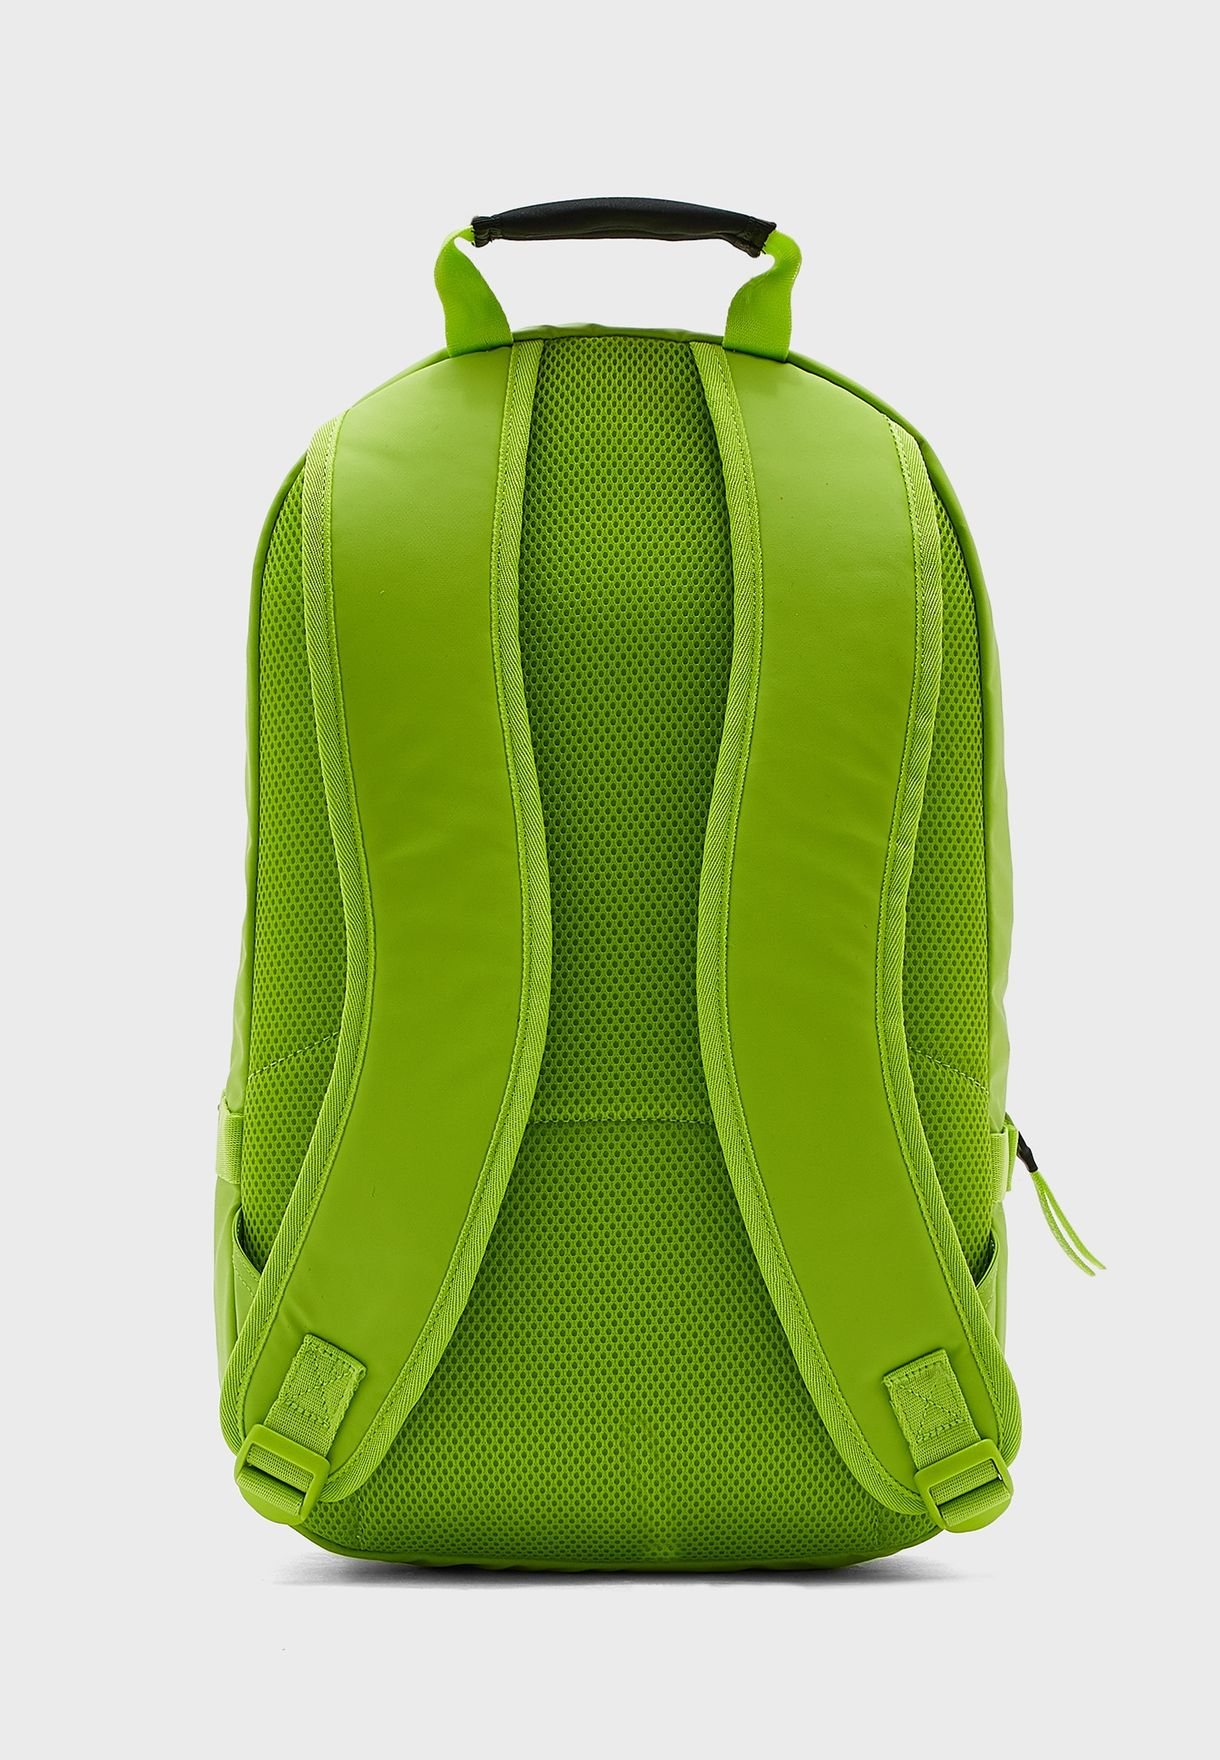 Slimline Backpack